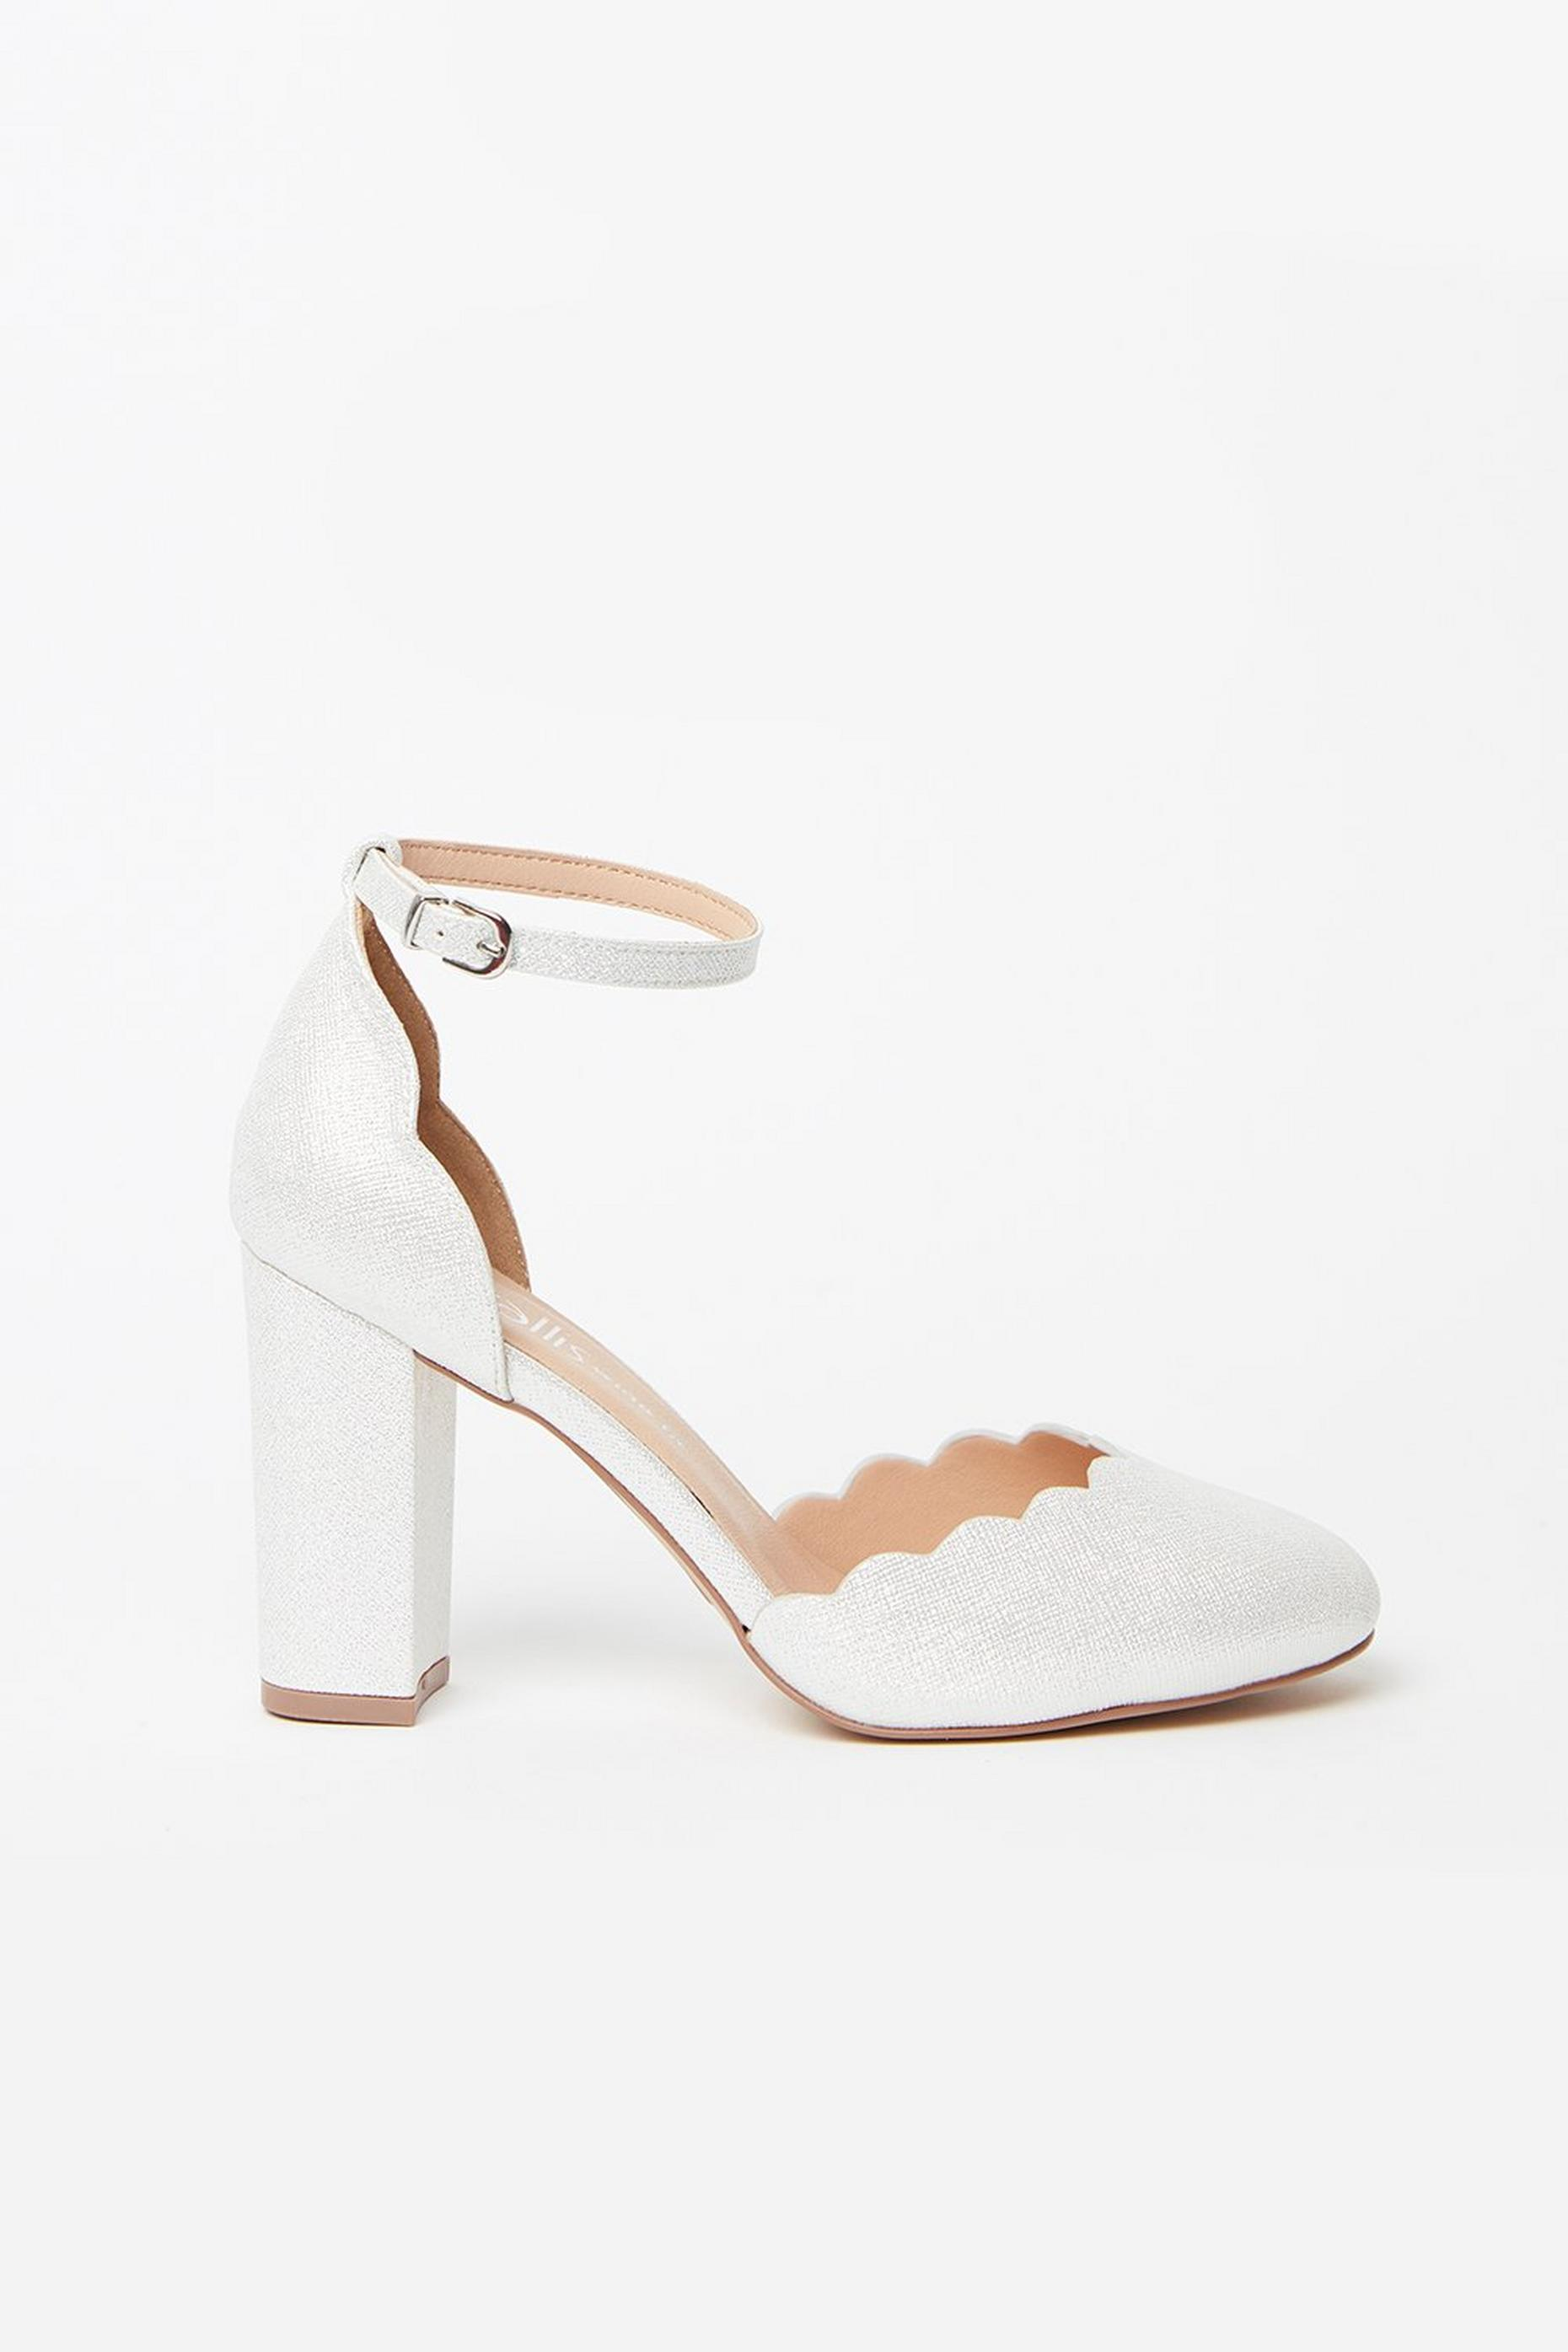 WIDE FIT White Scallop Edge Heel